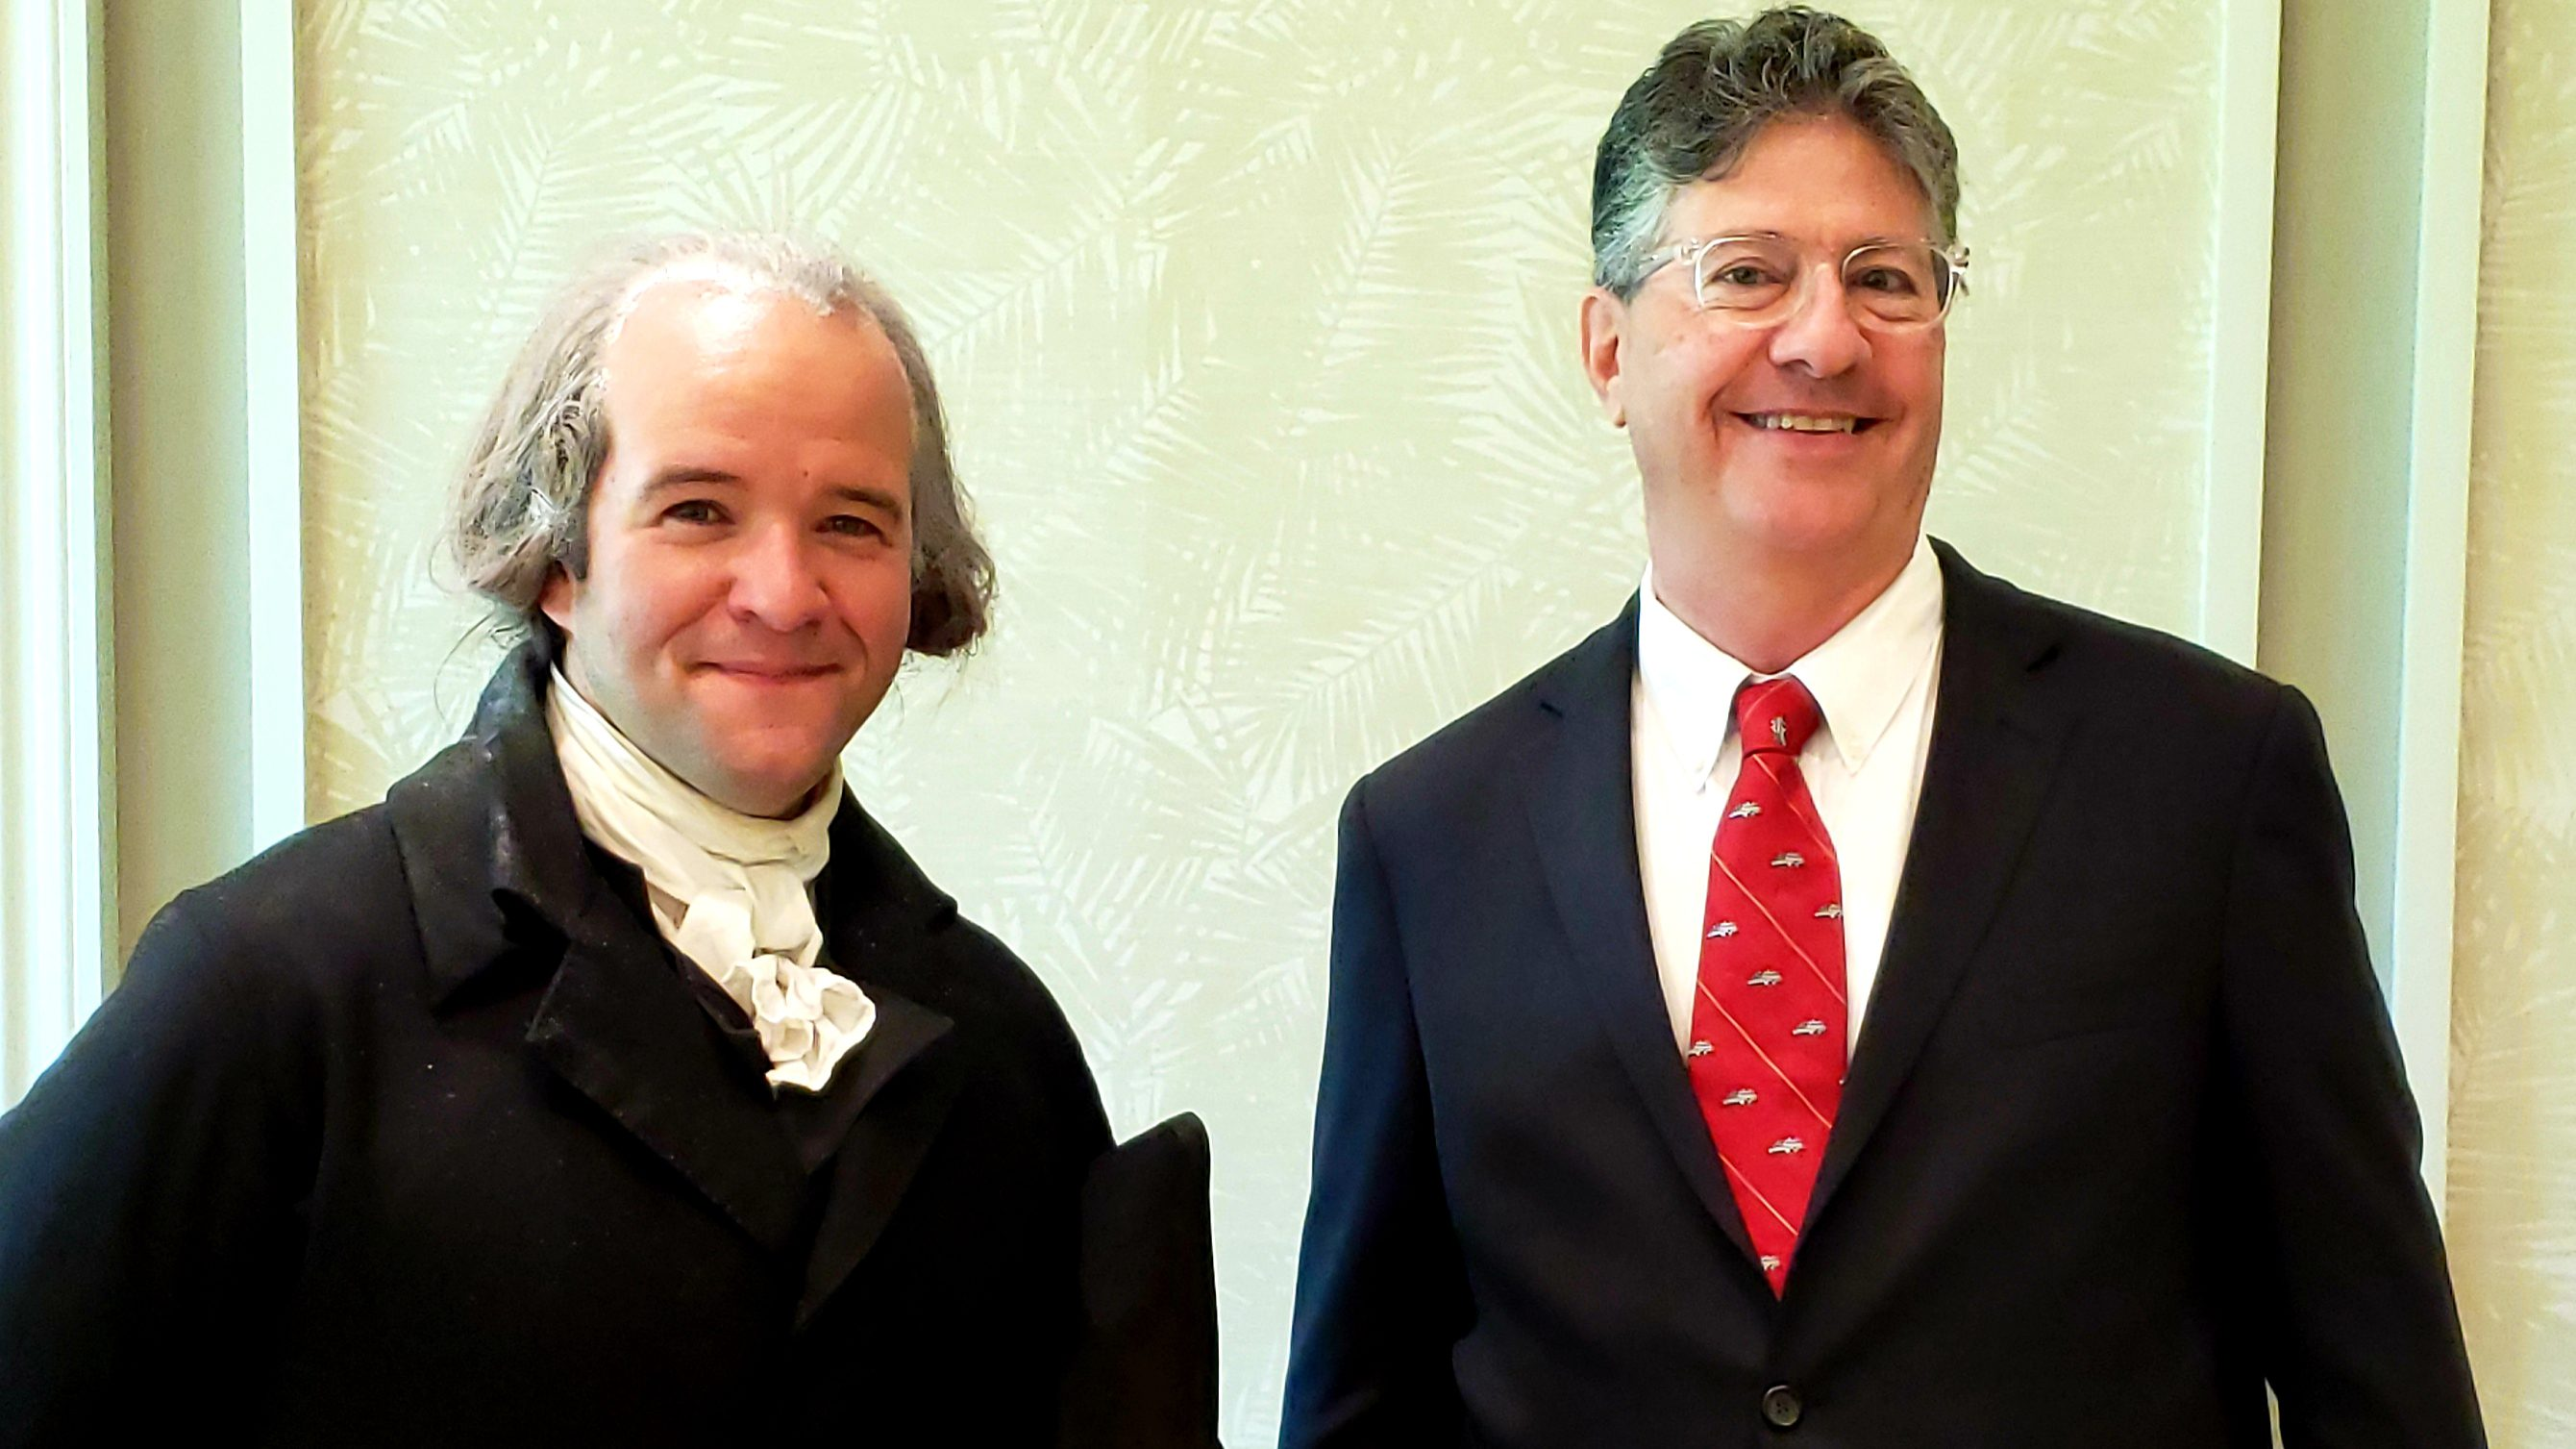 Bryan Austin and Laird A. Lile